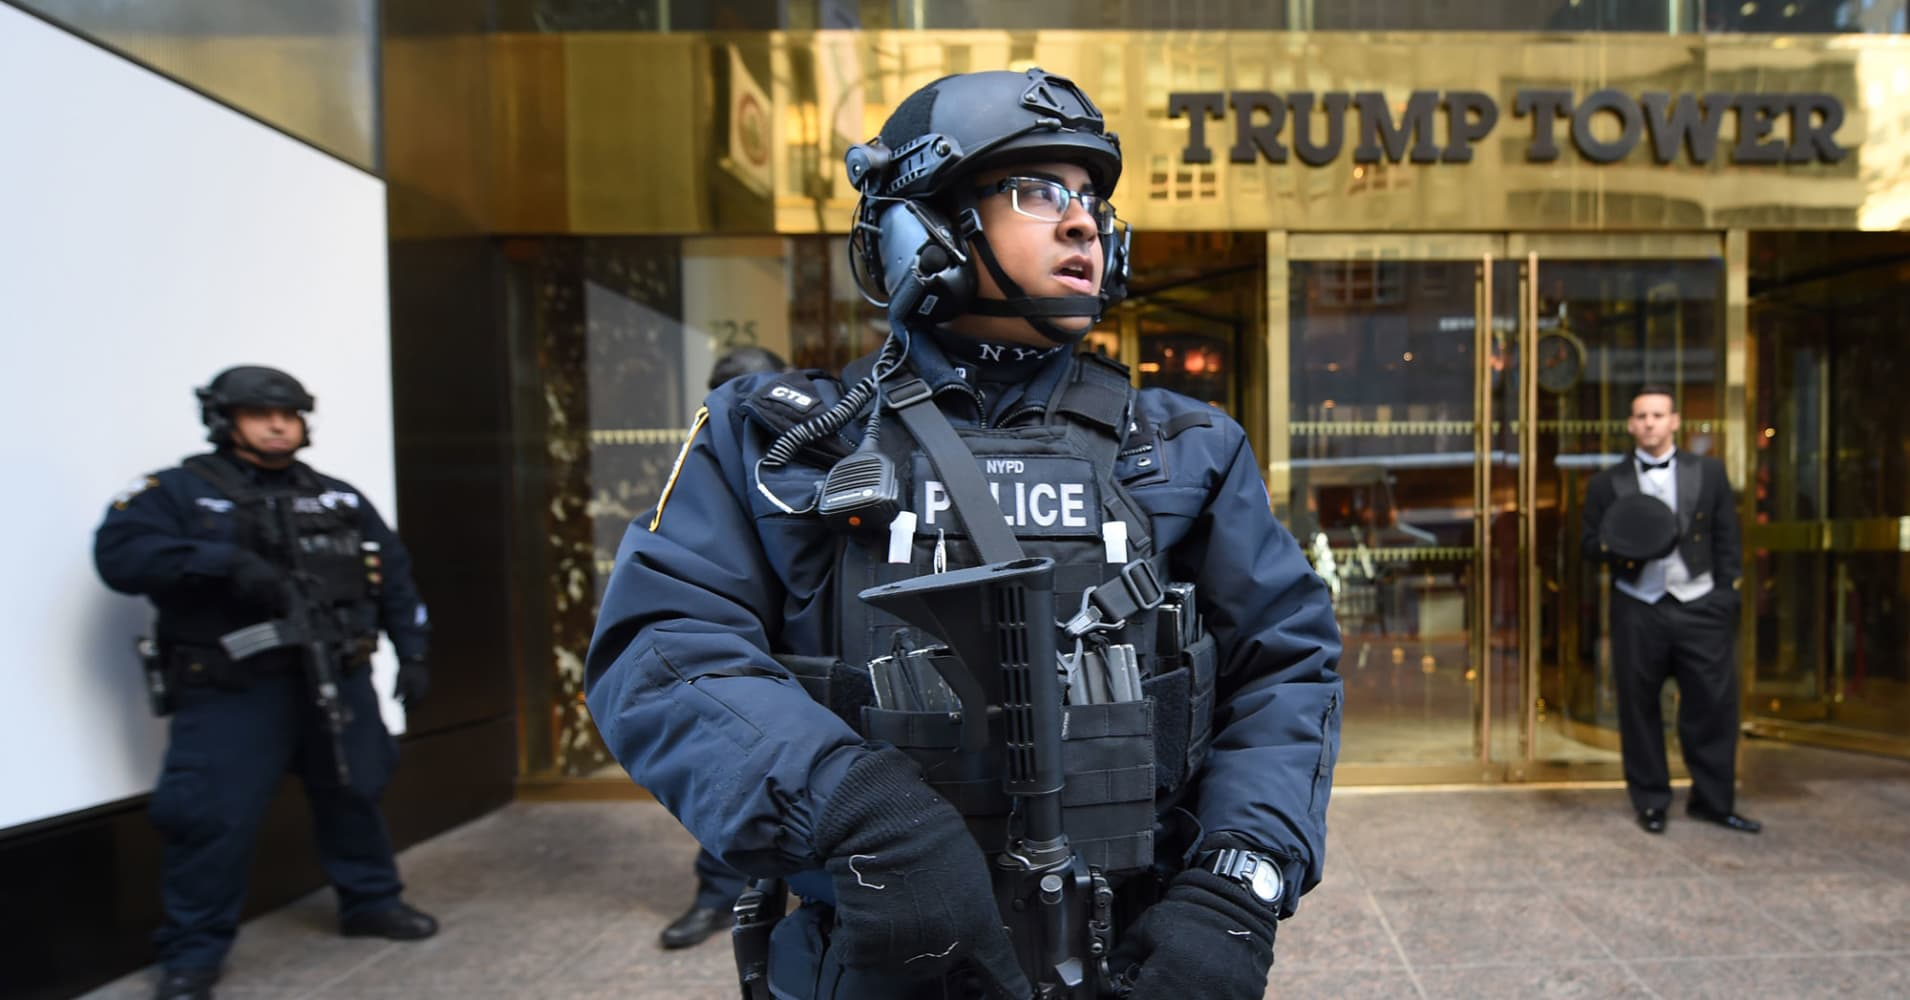 Laptop containing Trump Tower plans and Clinton email probe stolen from Secret Service agent's car